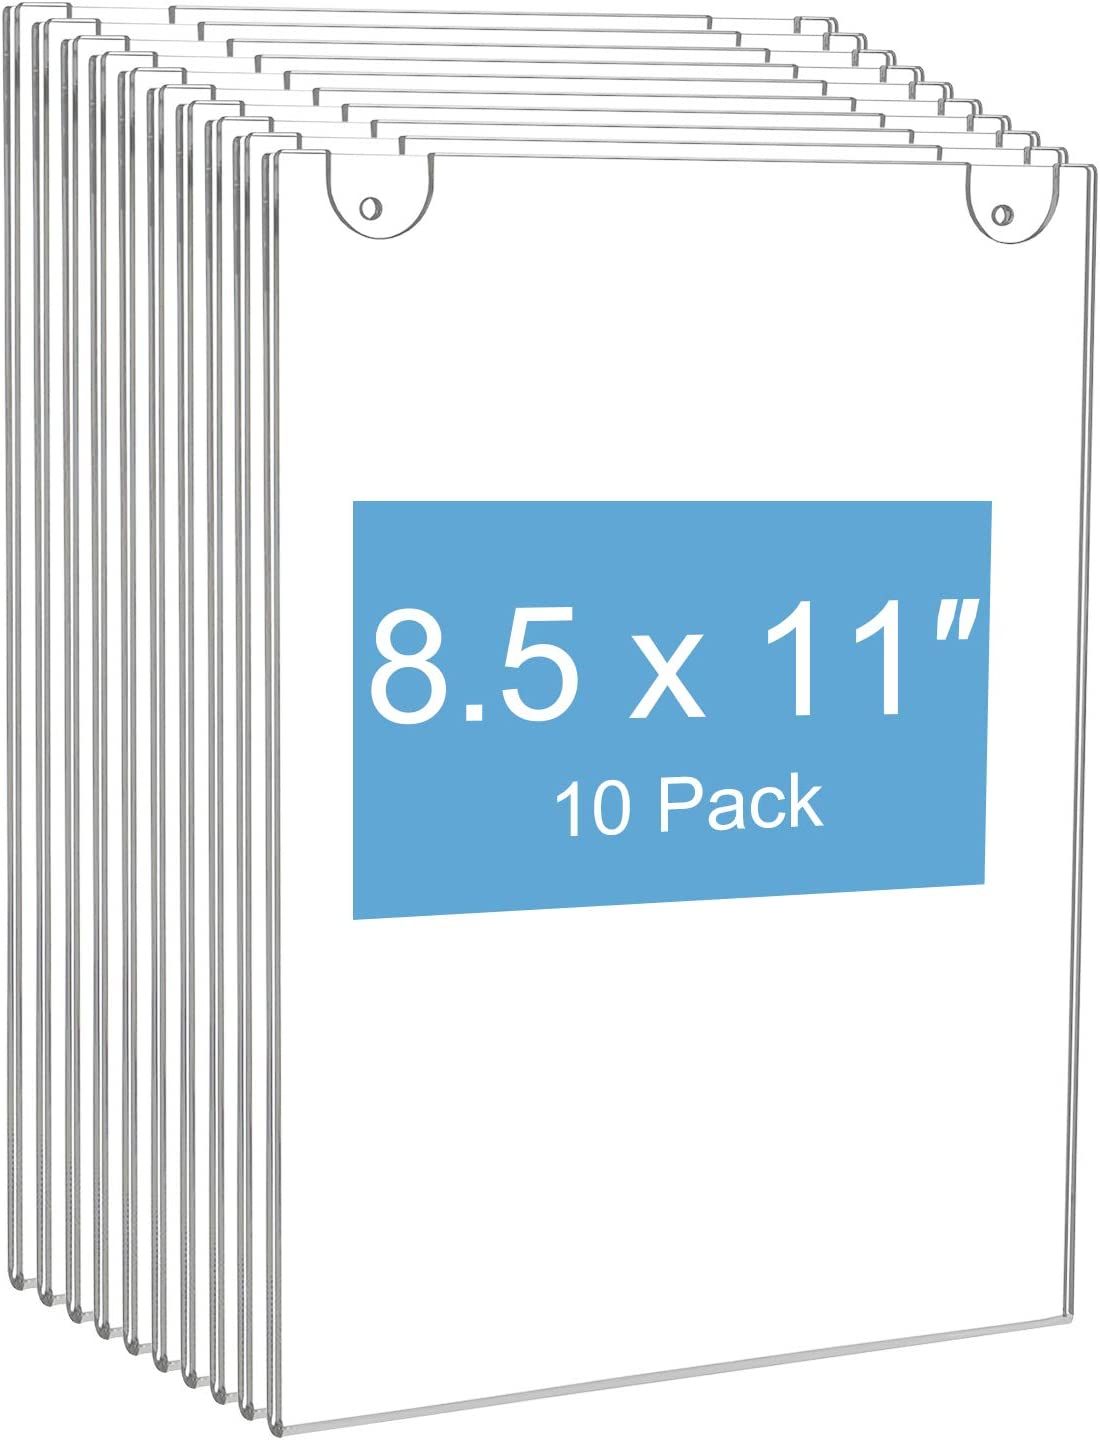 Amazon Com Niubee 10pack Acrylic Wall Mount Sign Holder 8 5 X 11 Clear Ad Frames For Papers Bonus With 3m Tape And Mounting Screws Office Products